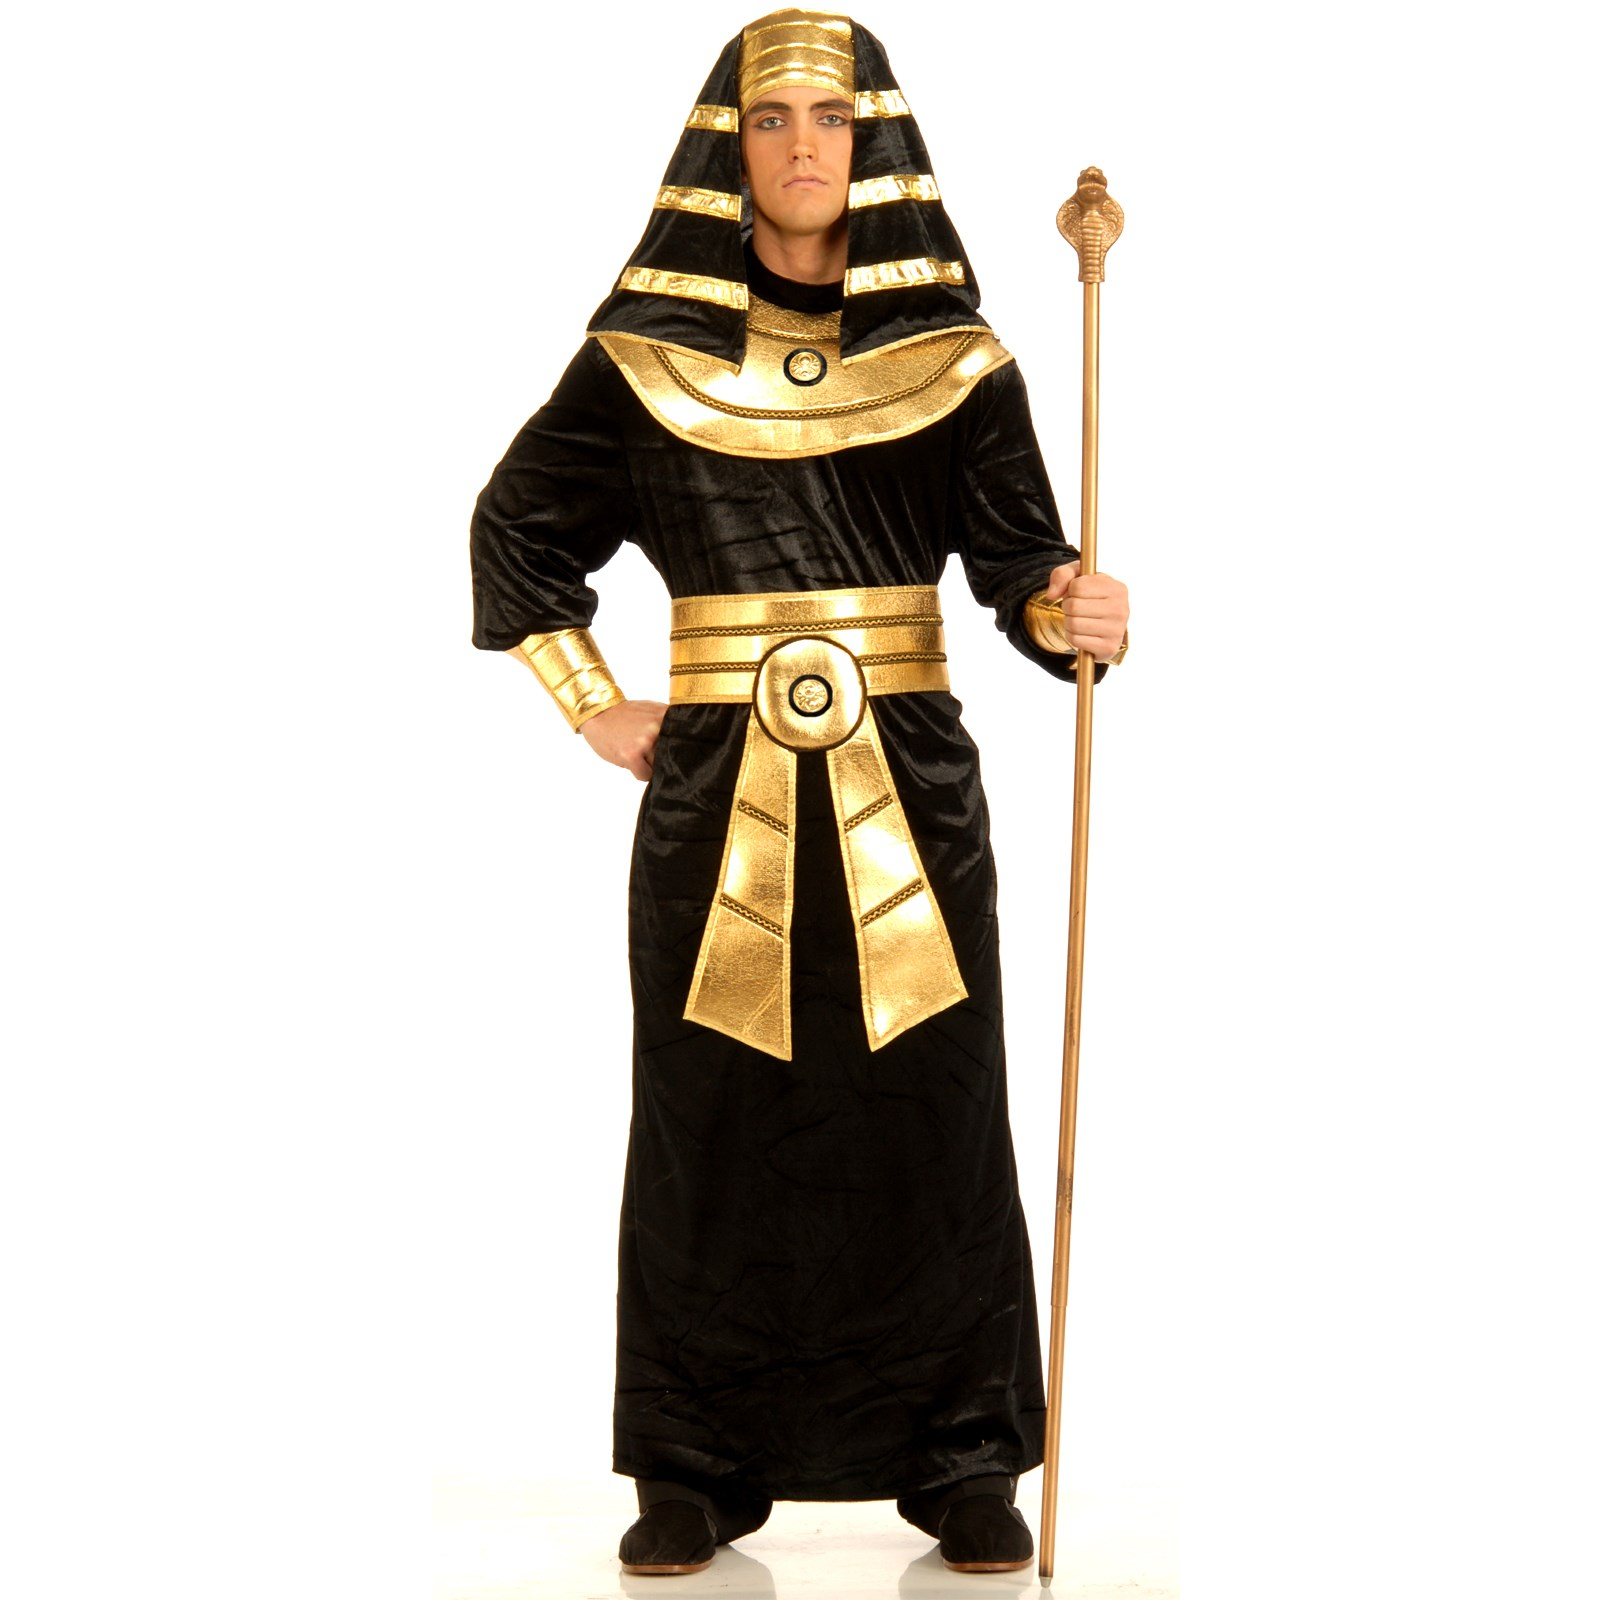 Home gt gt cleopatra costumes gt gt jewel of the nile egyptian adult - Pharaoh Adult Costume